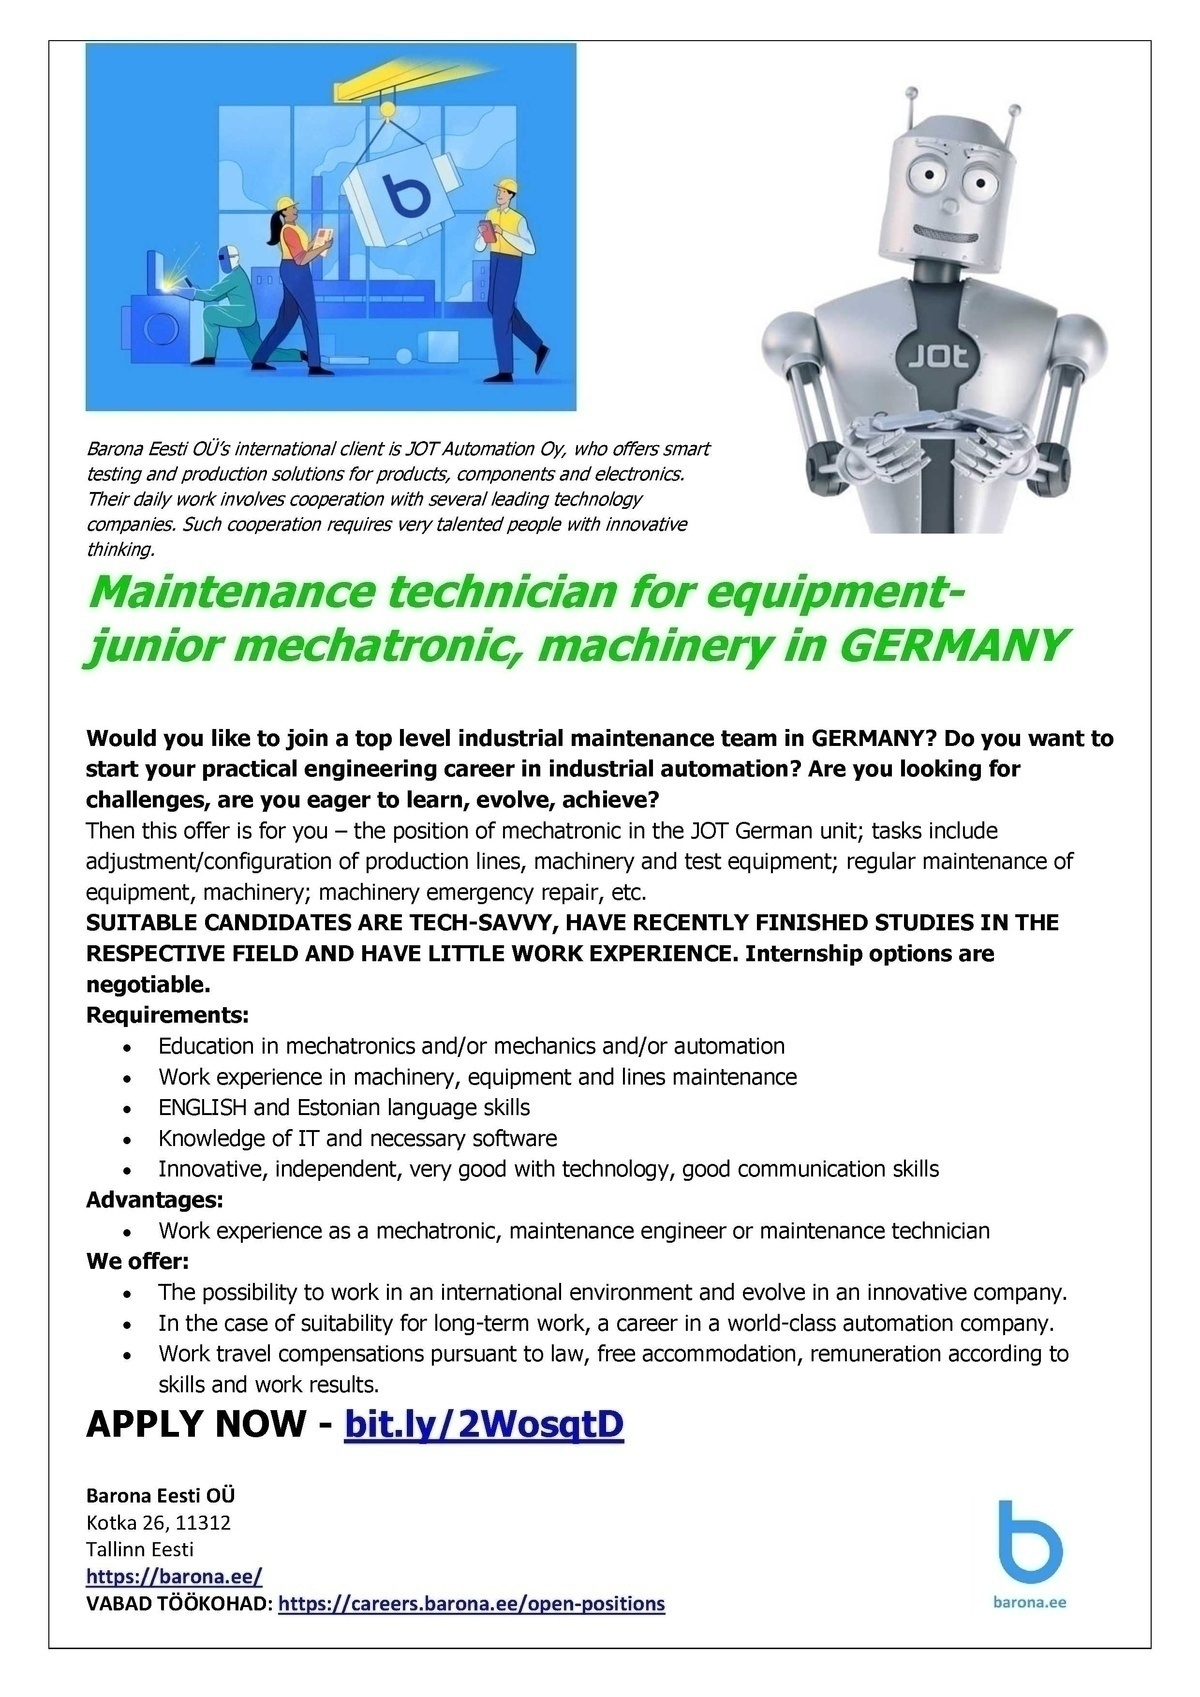 CVKeskus.ee client Mechatronic machinery in GERMANY (Junior to senior level)